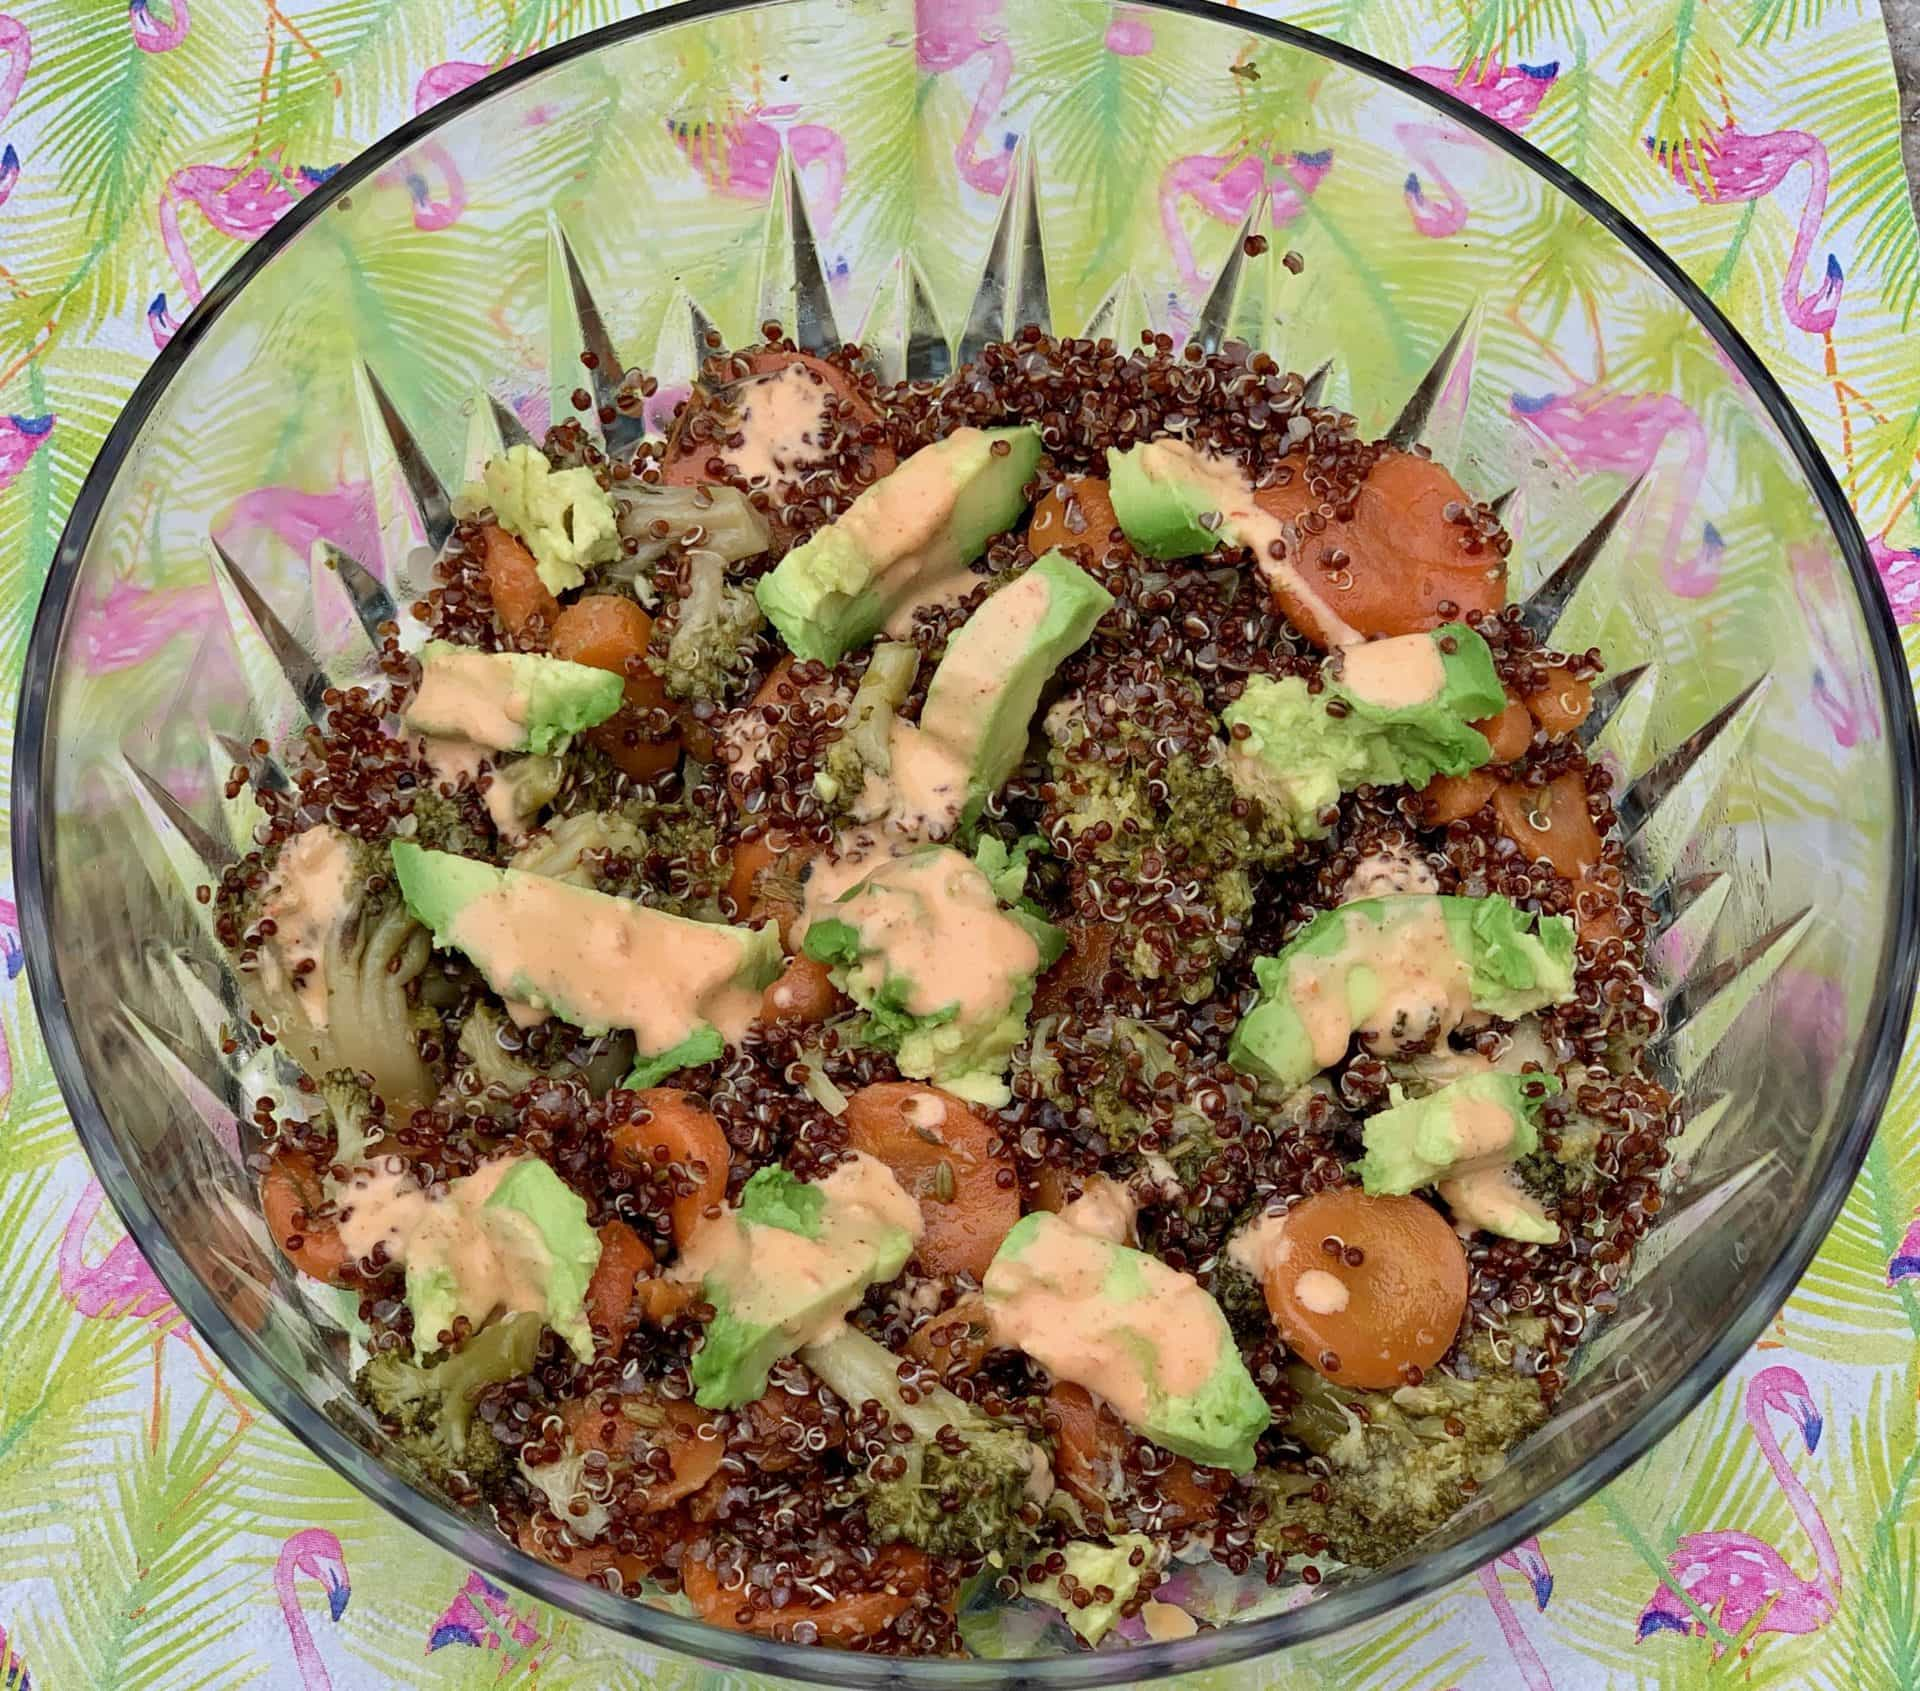 Red quinoa with carrots, broccoli, avocados, and harissa dressing